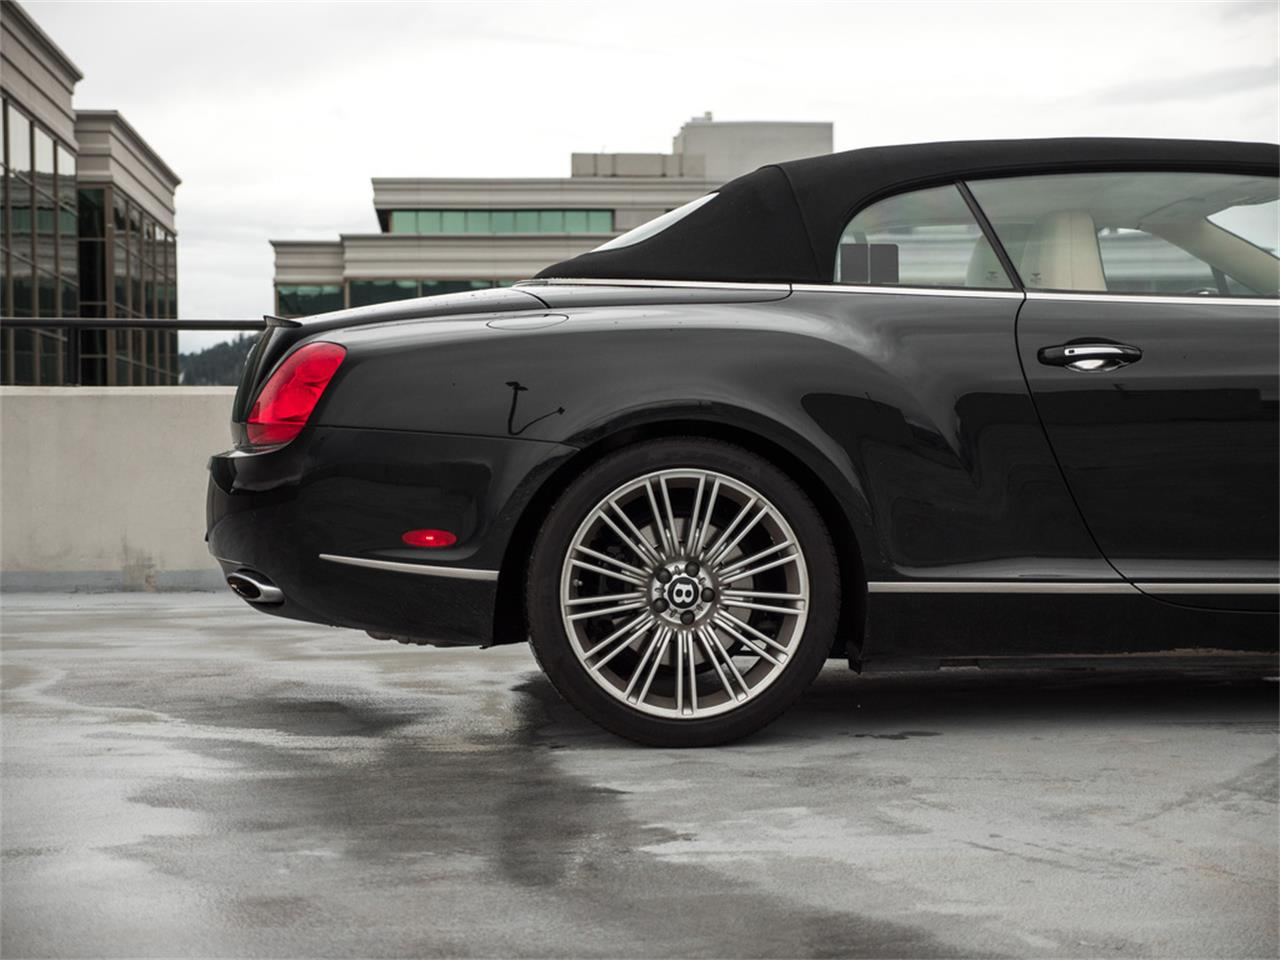 Large Picture of '11 Bentley Continental located in Kelowna British Columbia - $91,819.00 - QA5D